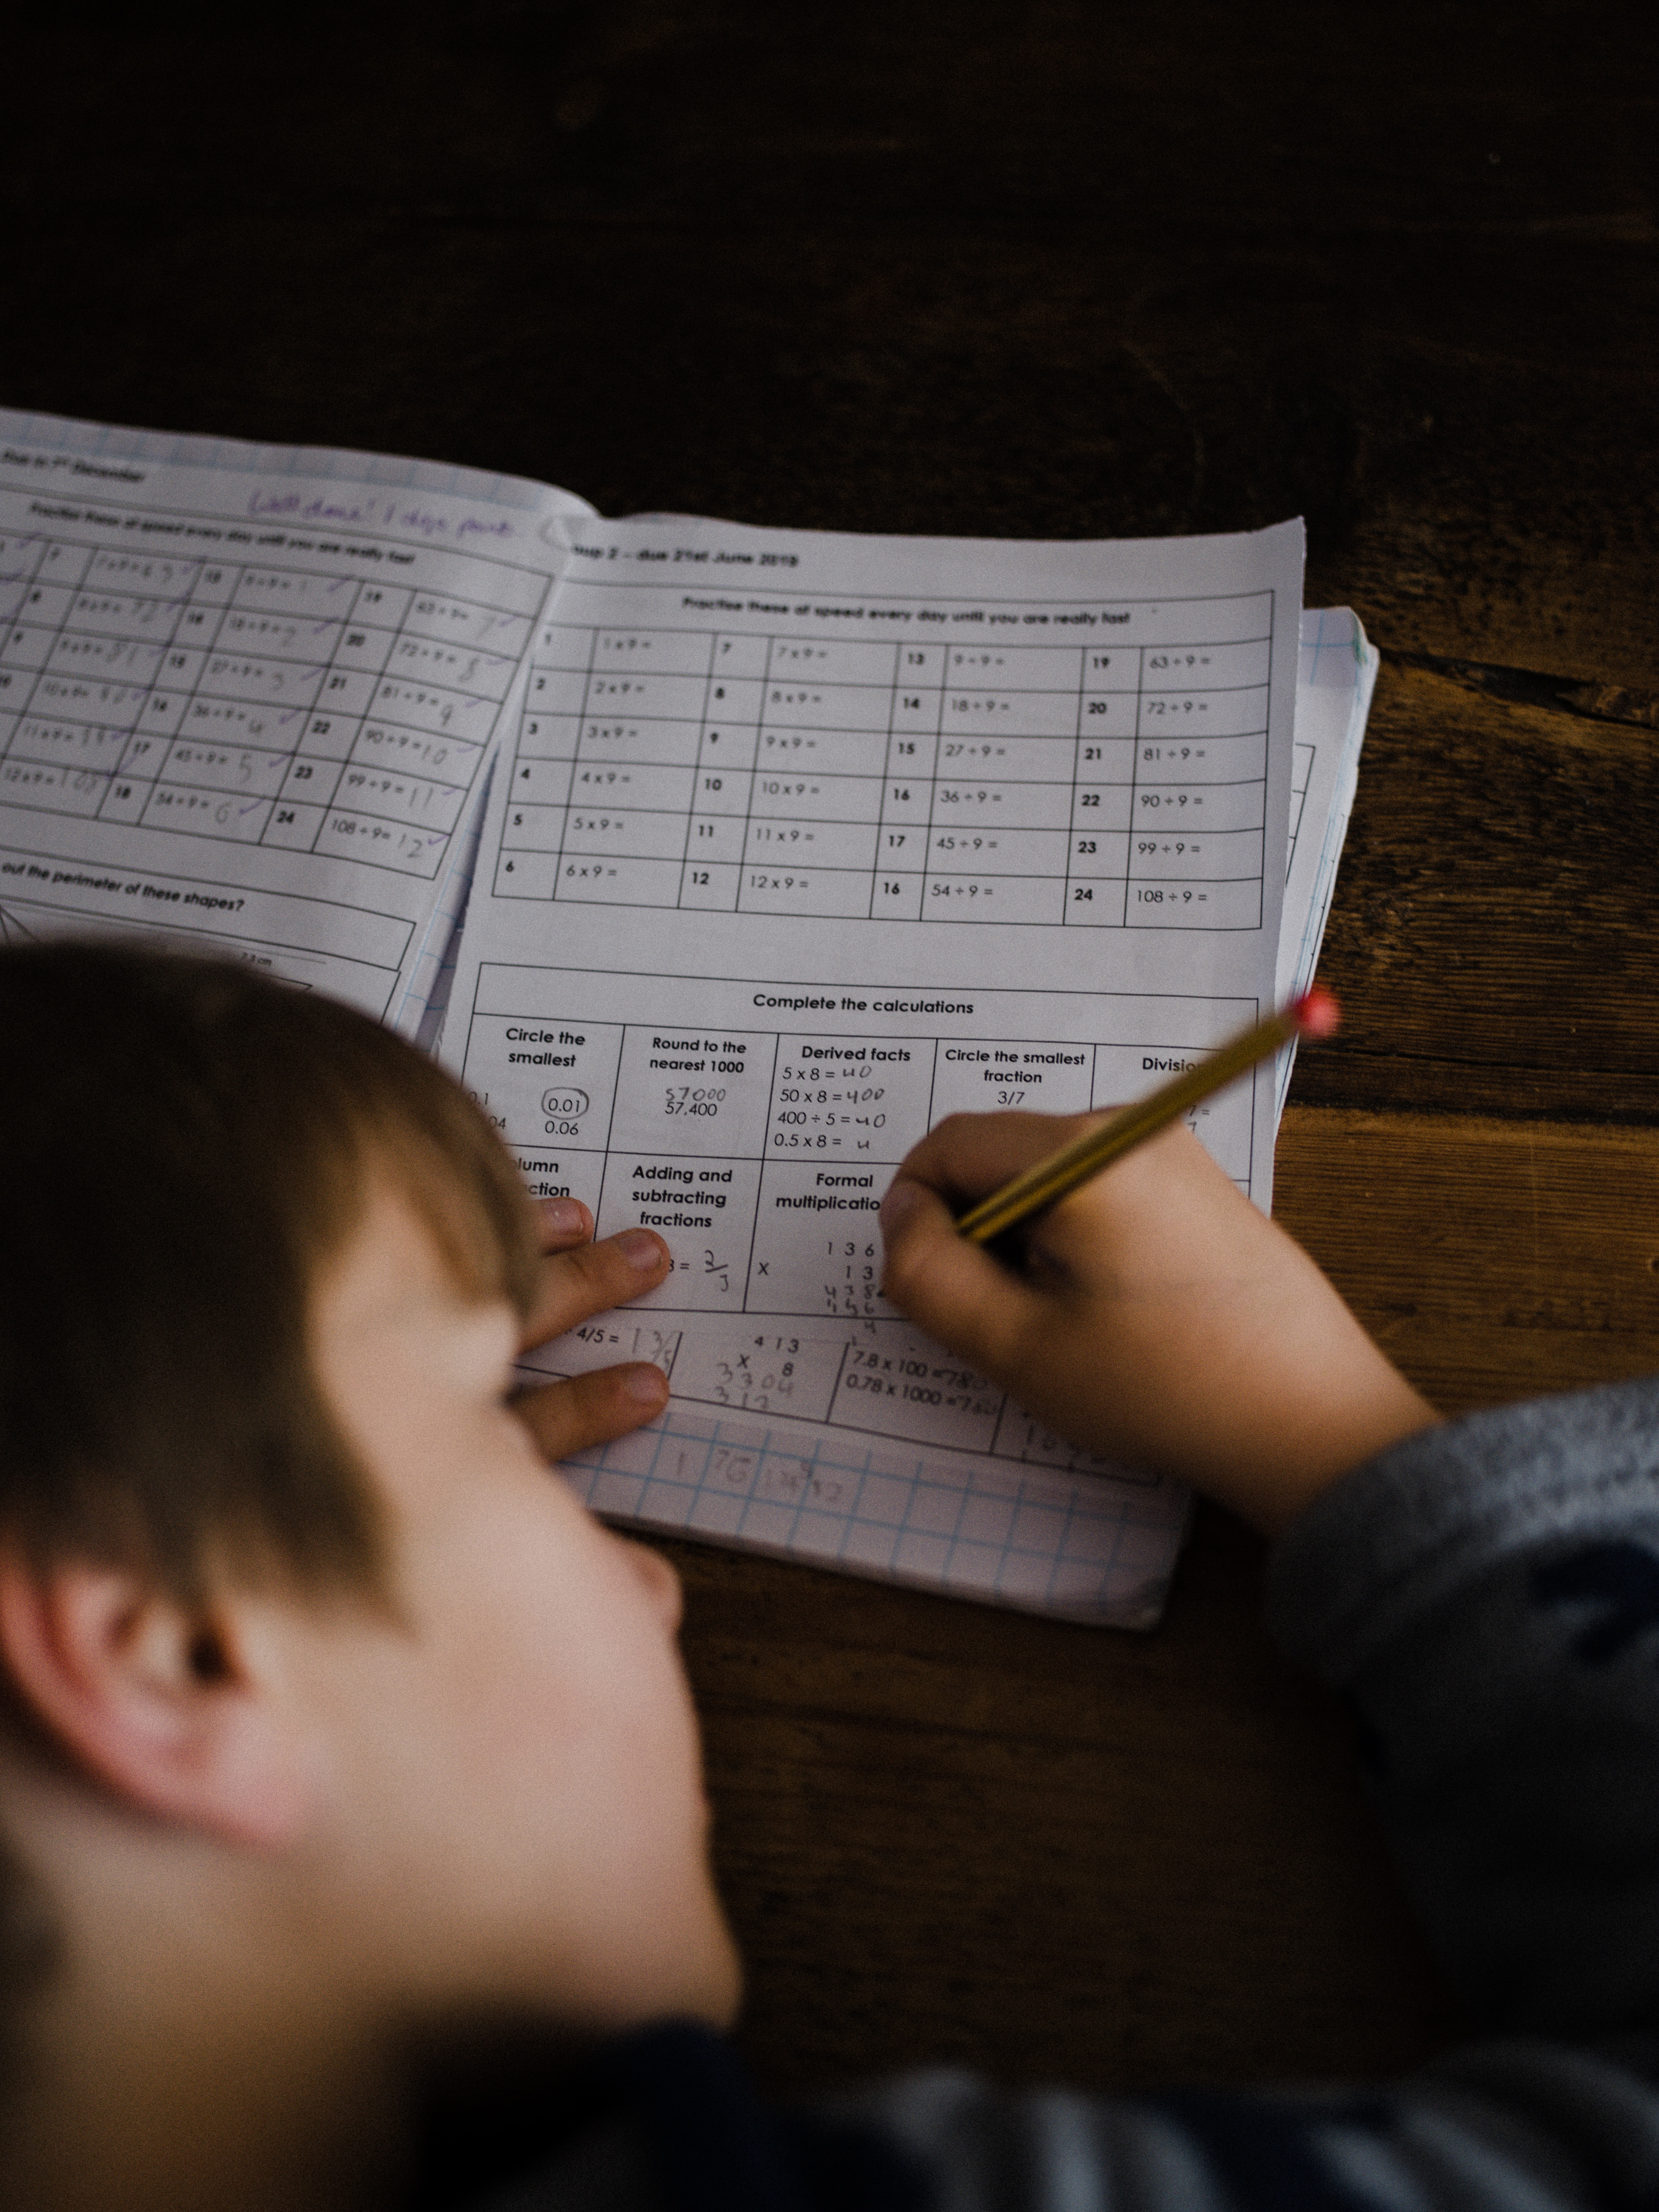 Photo of brown-haired child working on math assignment